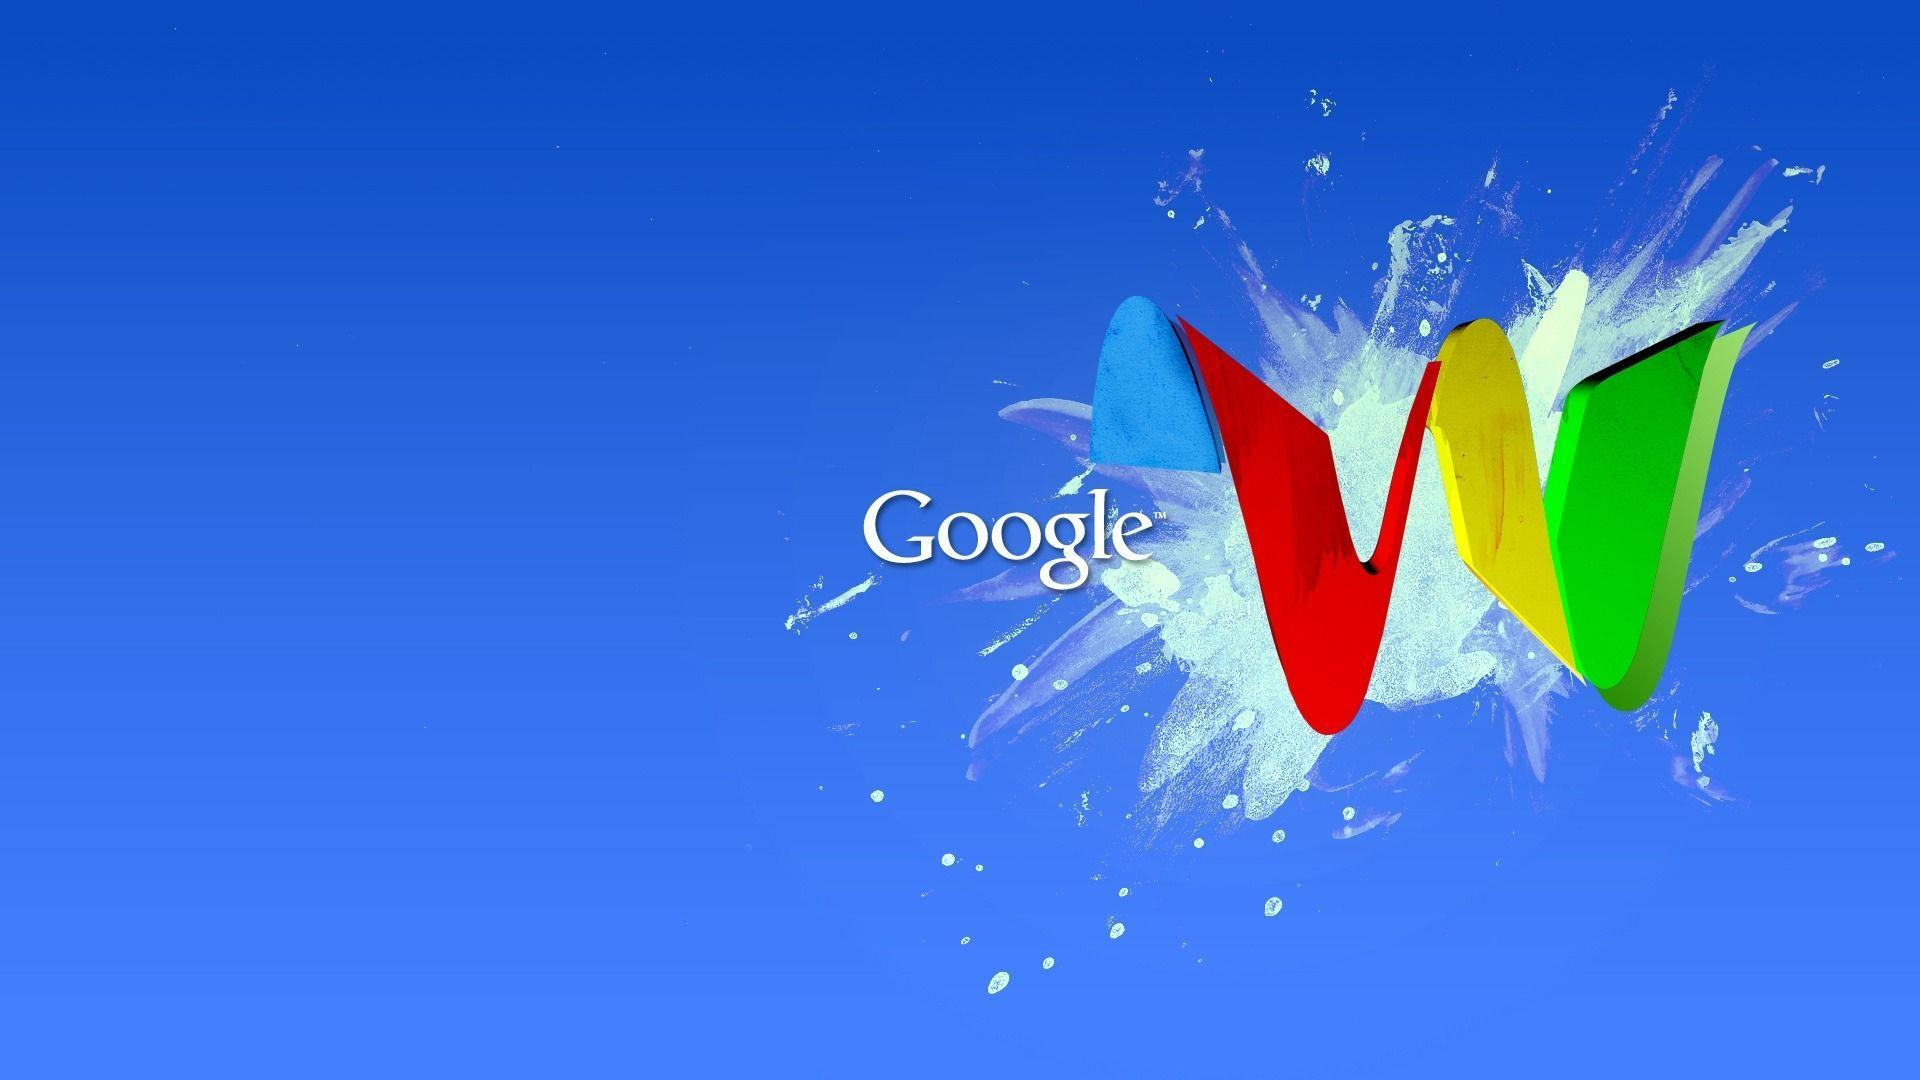 Background image for google - Art Google Logo Wallpaper Background 11288 Wallpaper High